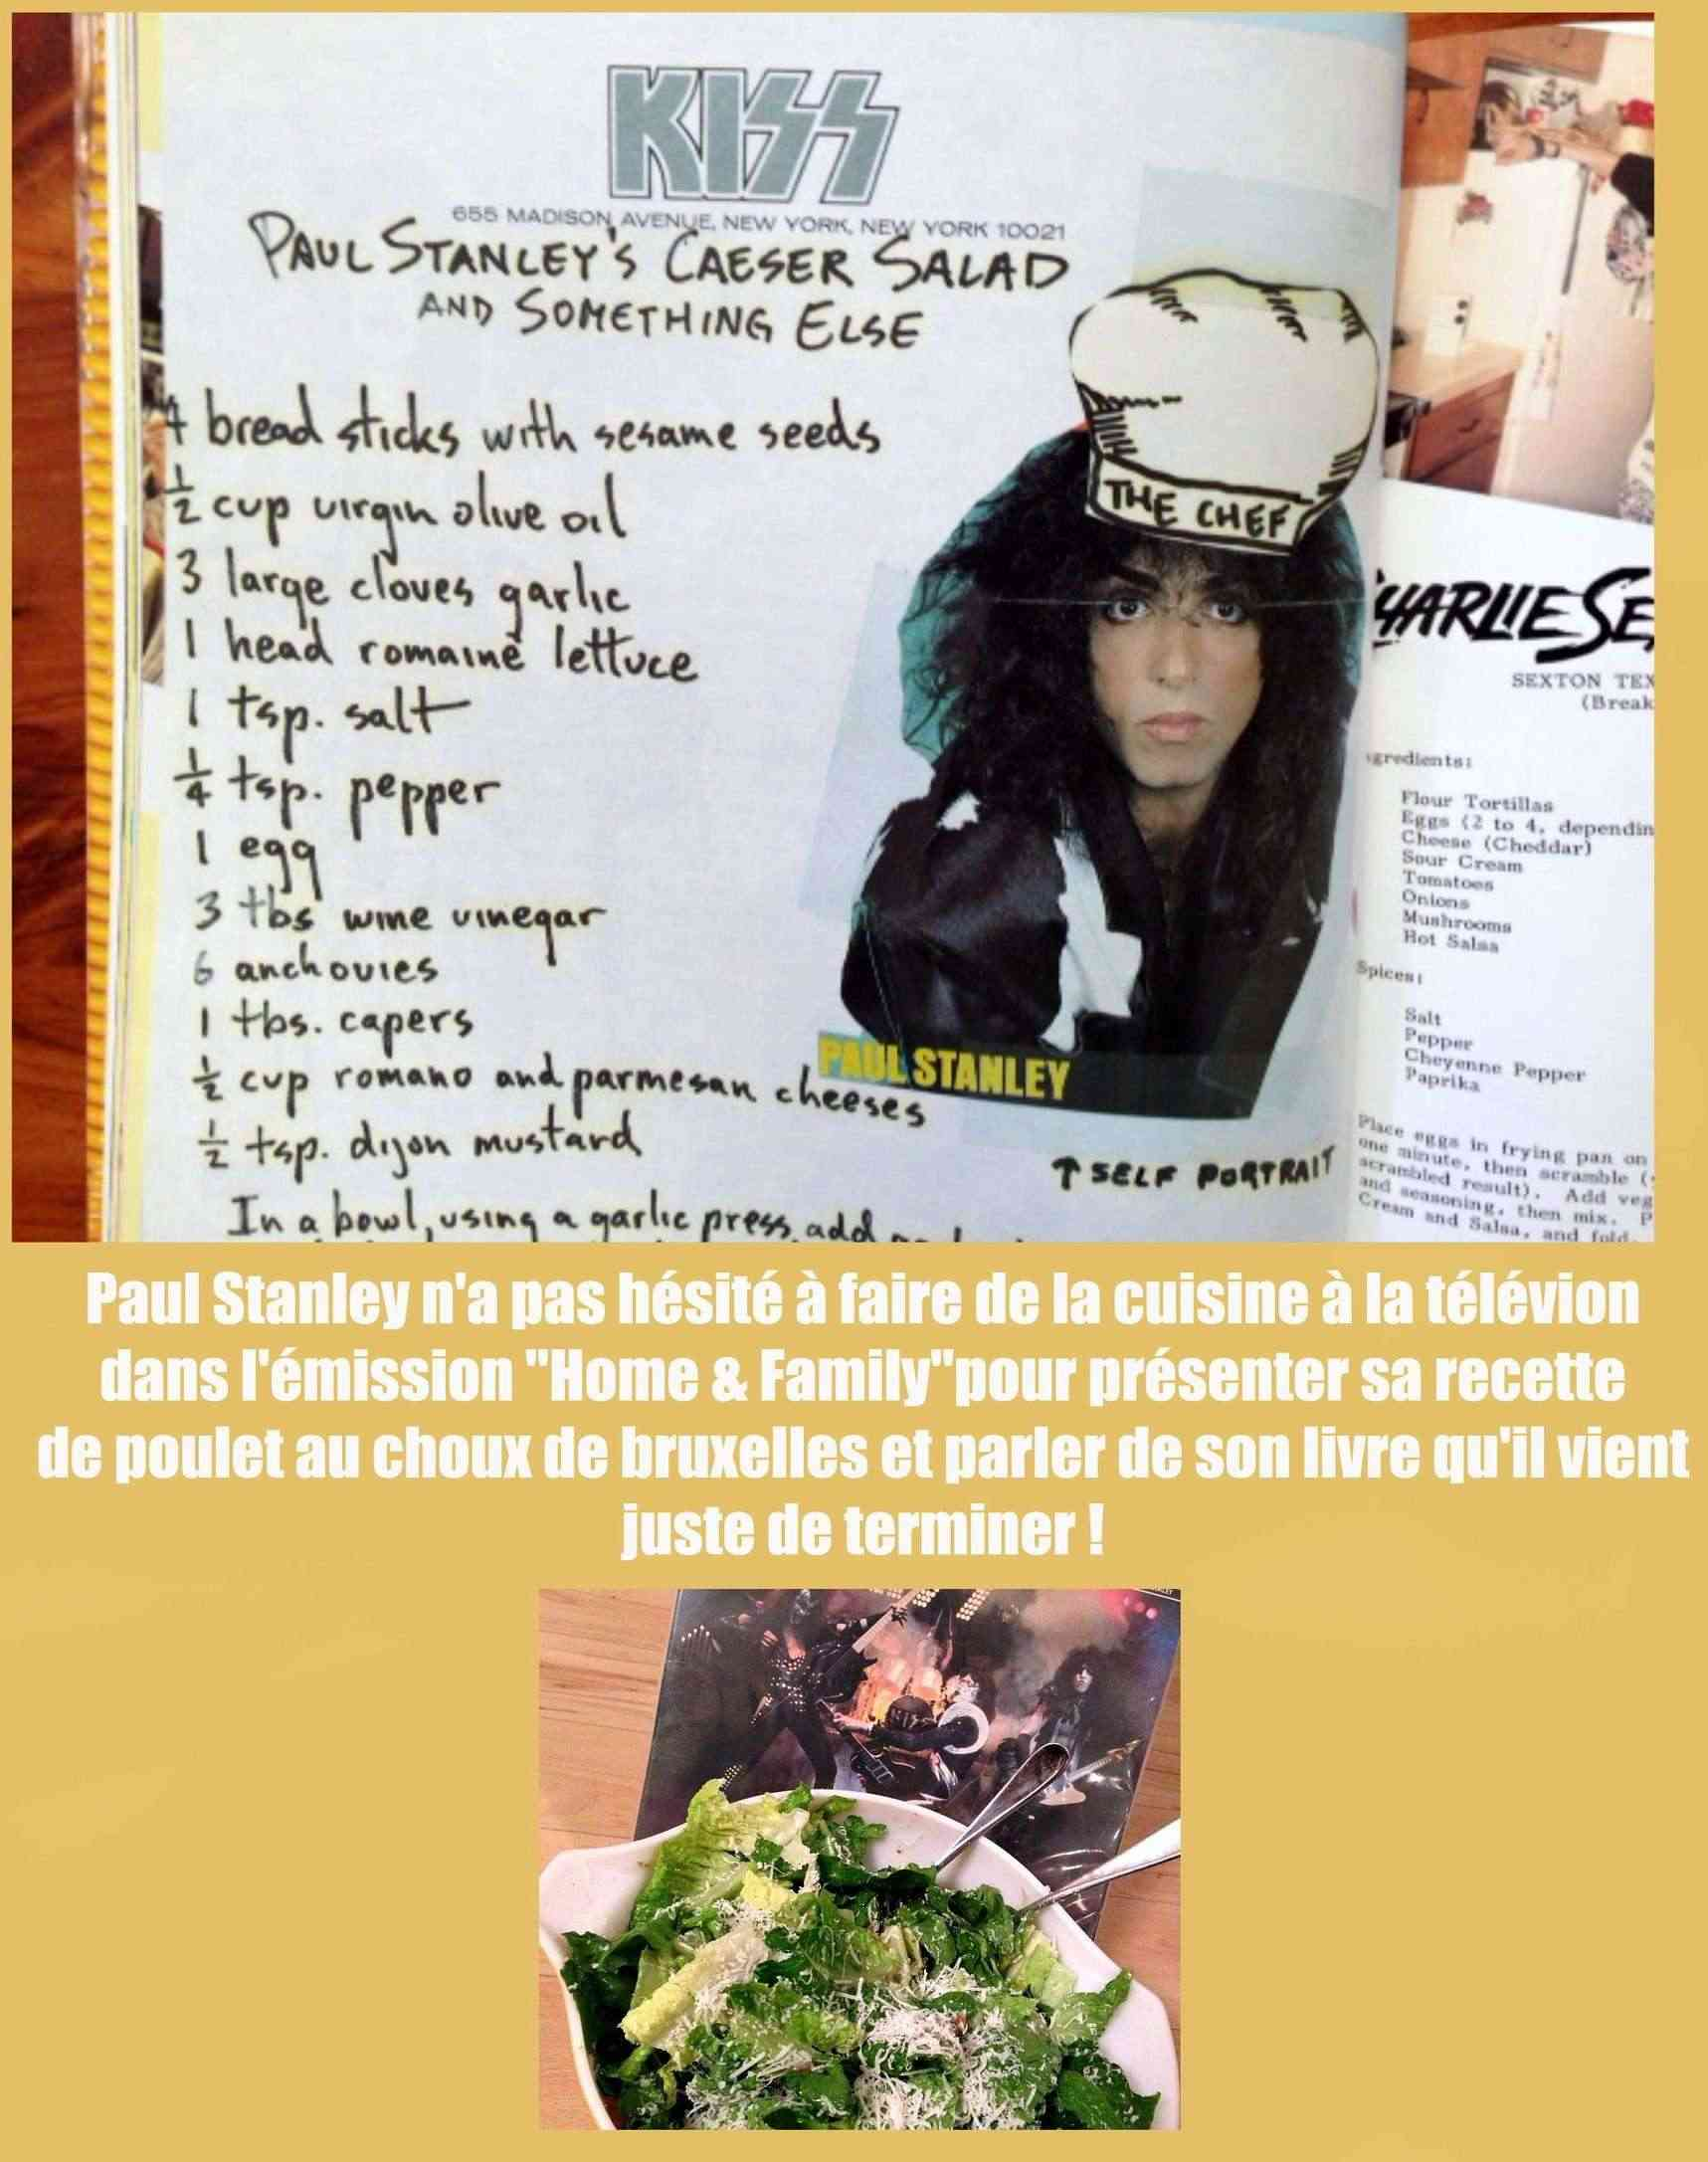 Les NEWS du METAL en VRAC ... - Page 4 Paul_s10